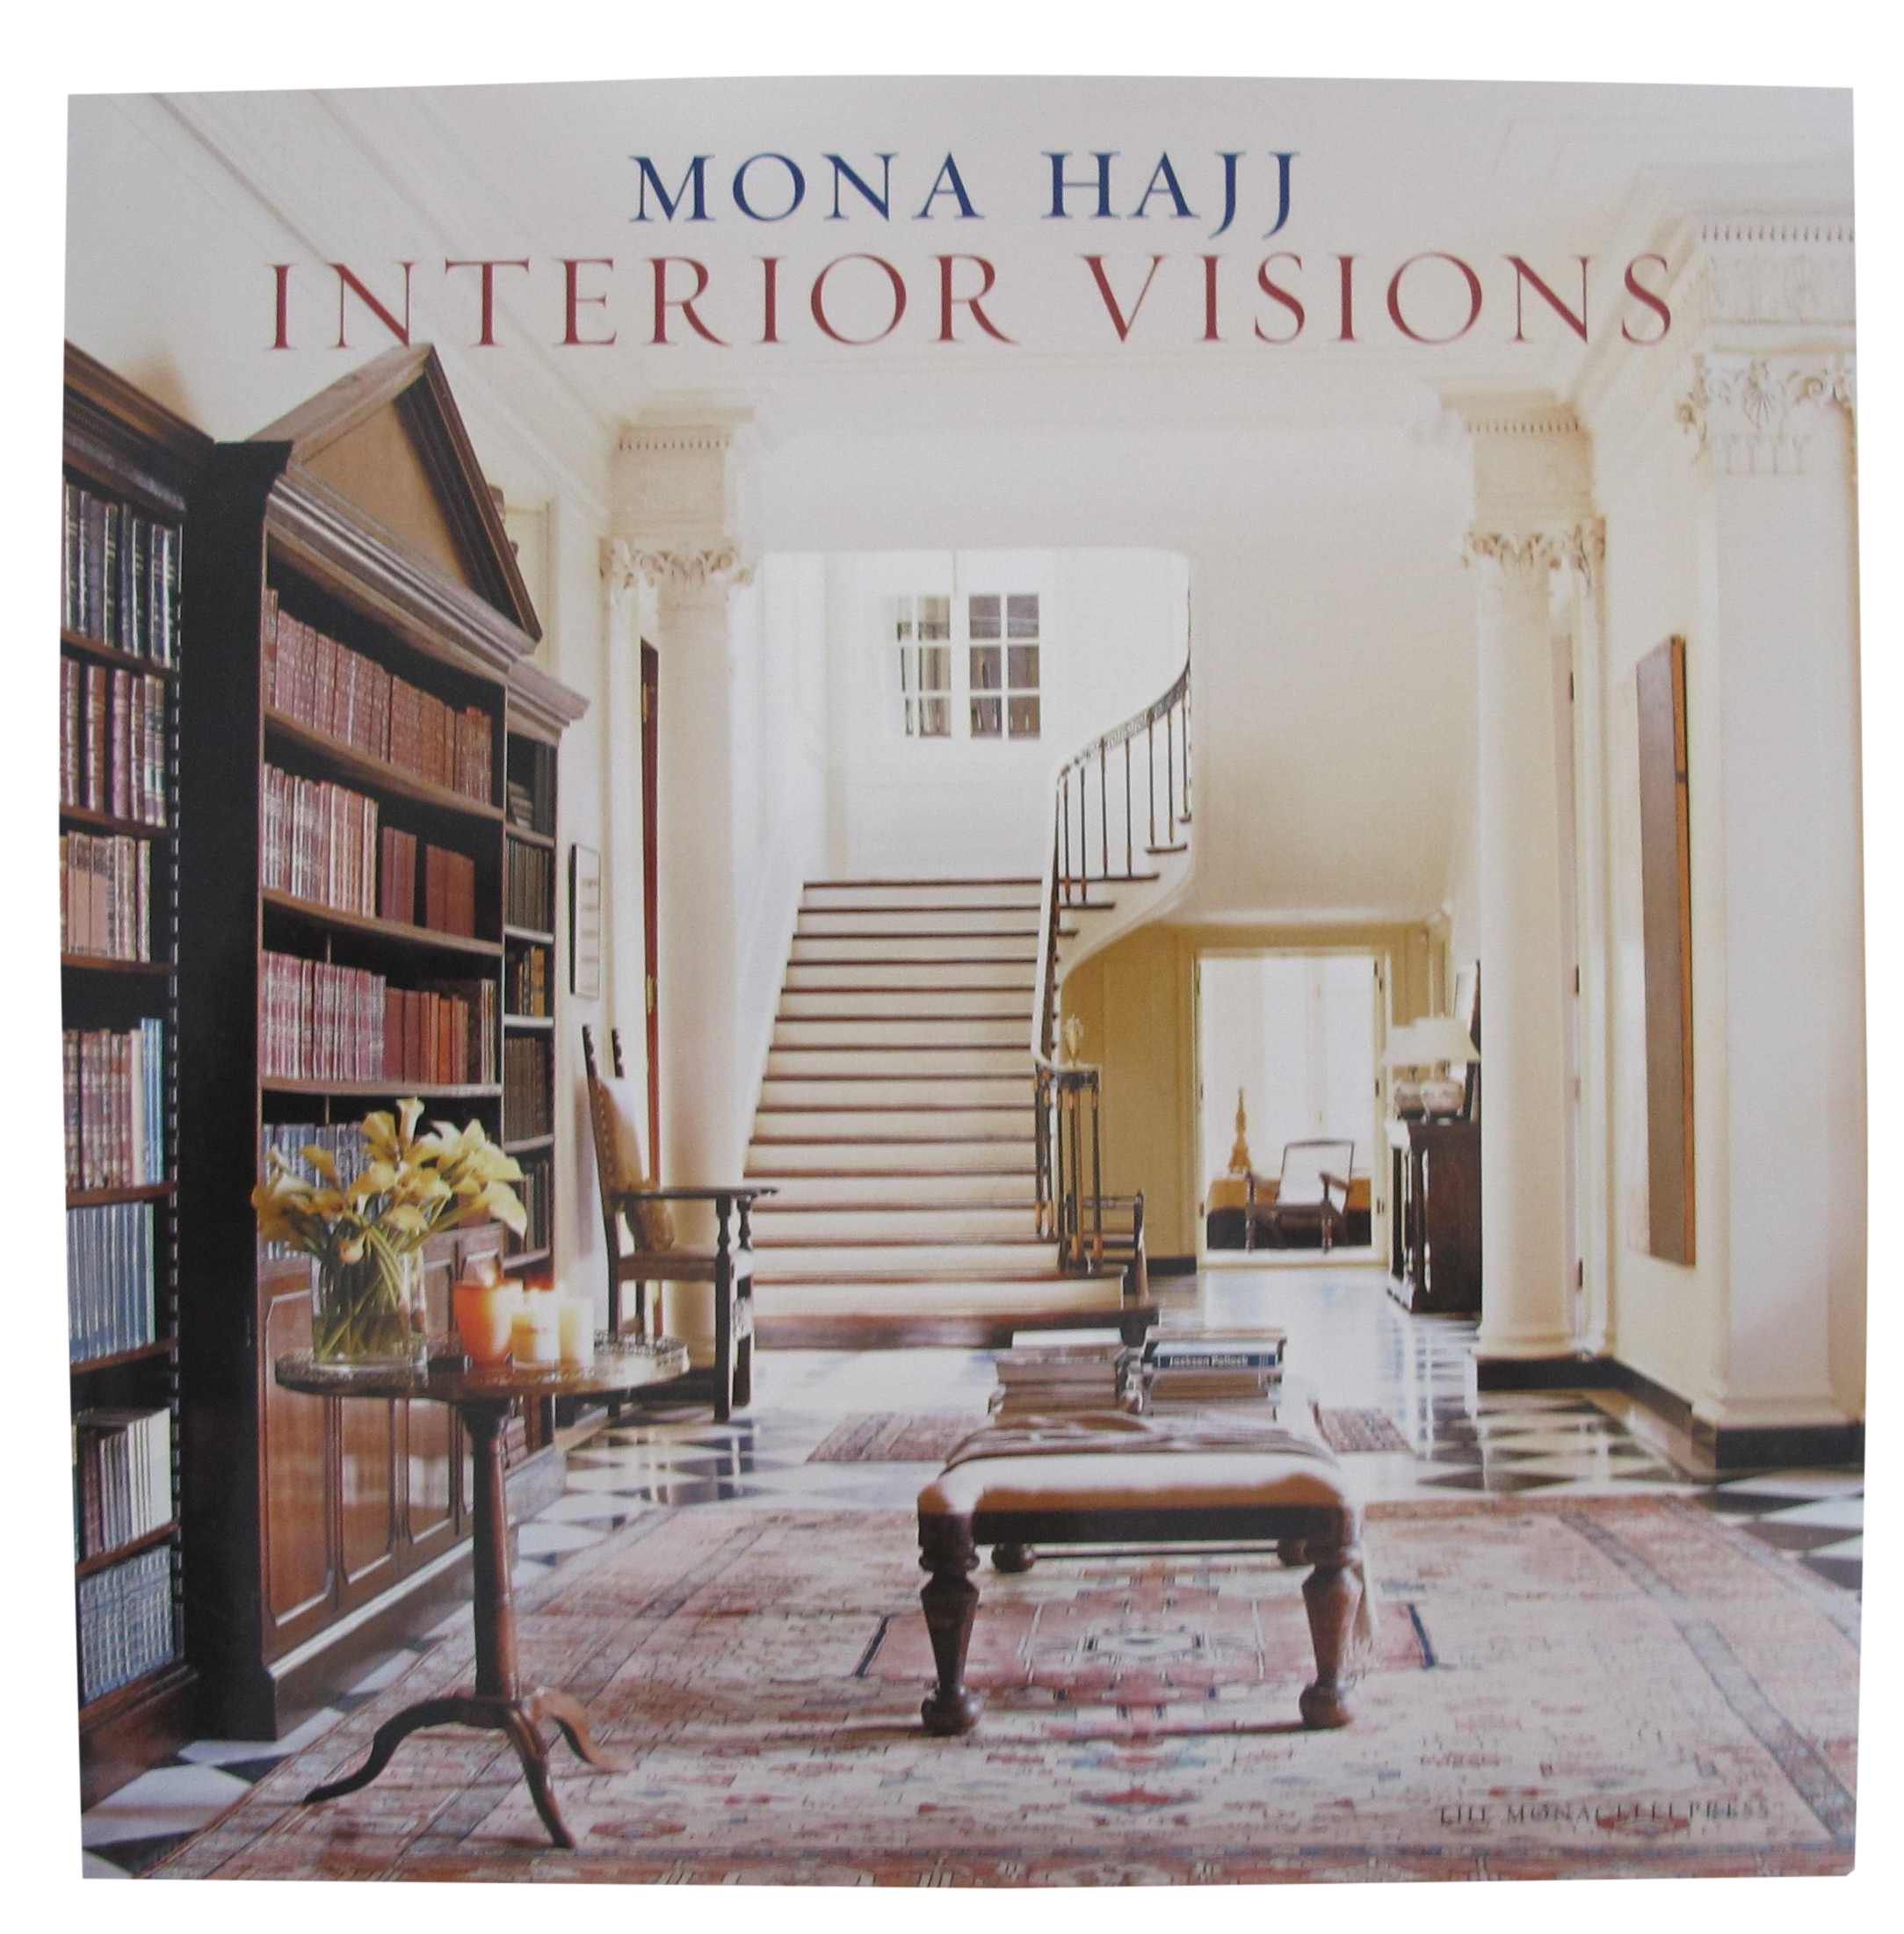 interior visions by mona hajj signed chairish